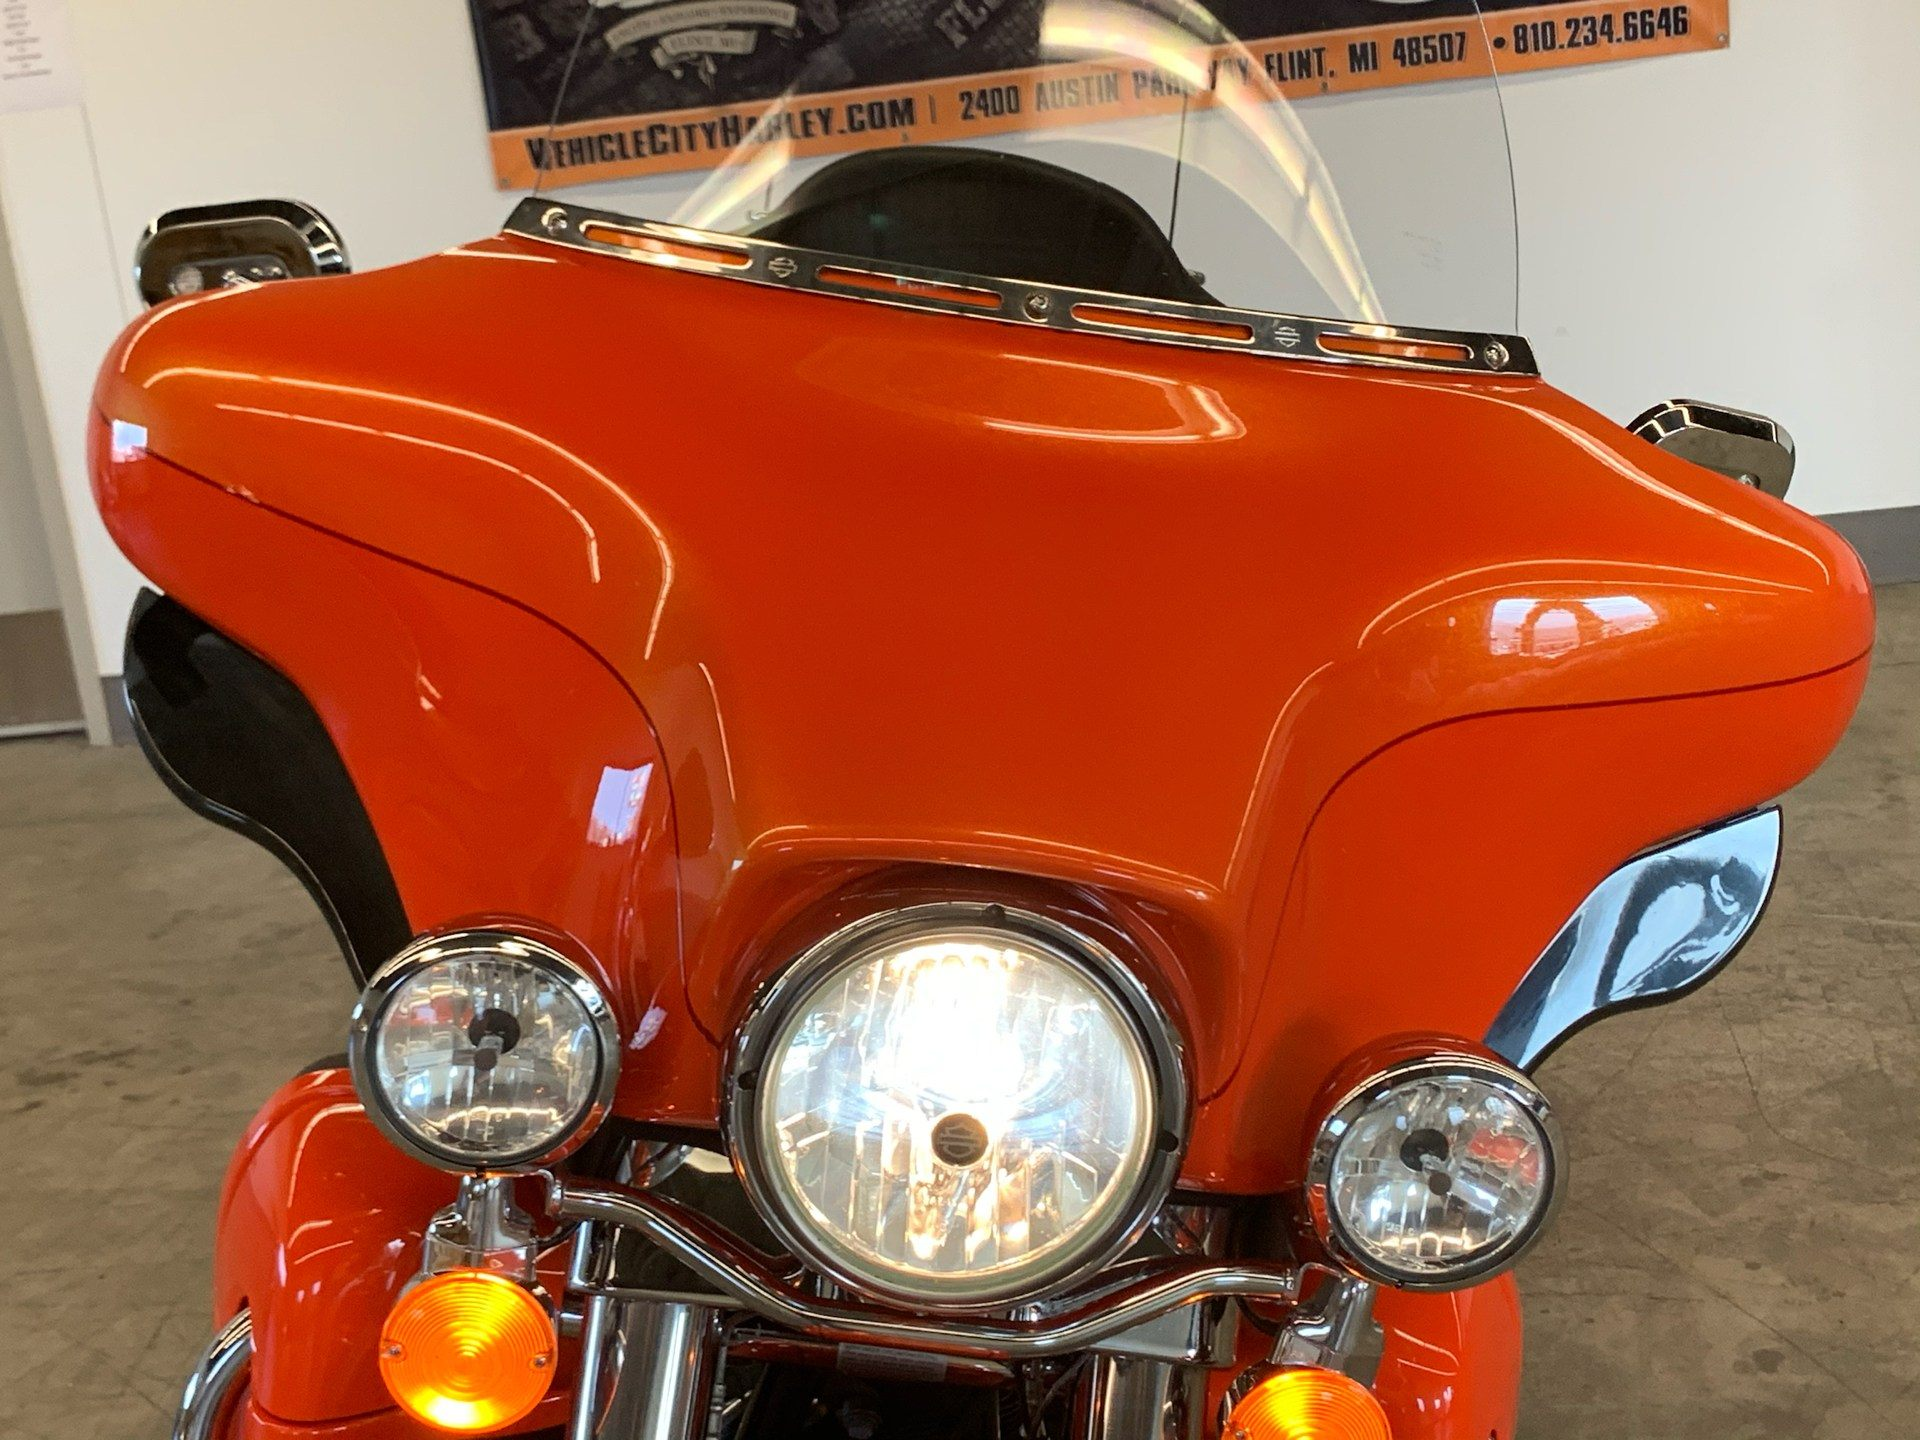 2012 Harley-Davidson Electra Glide® Ultra Limited in Flint, Michigan - Photo 21